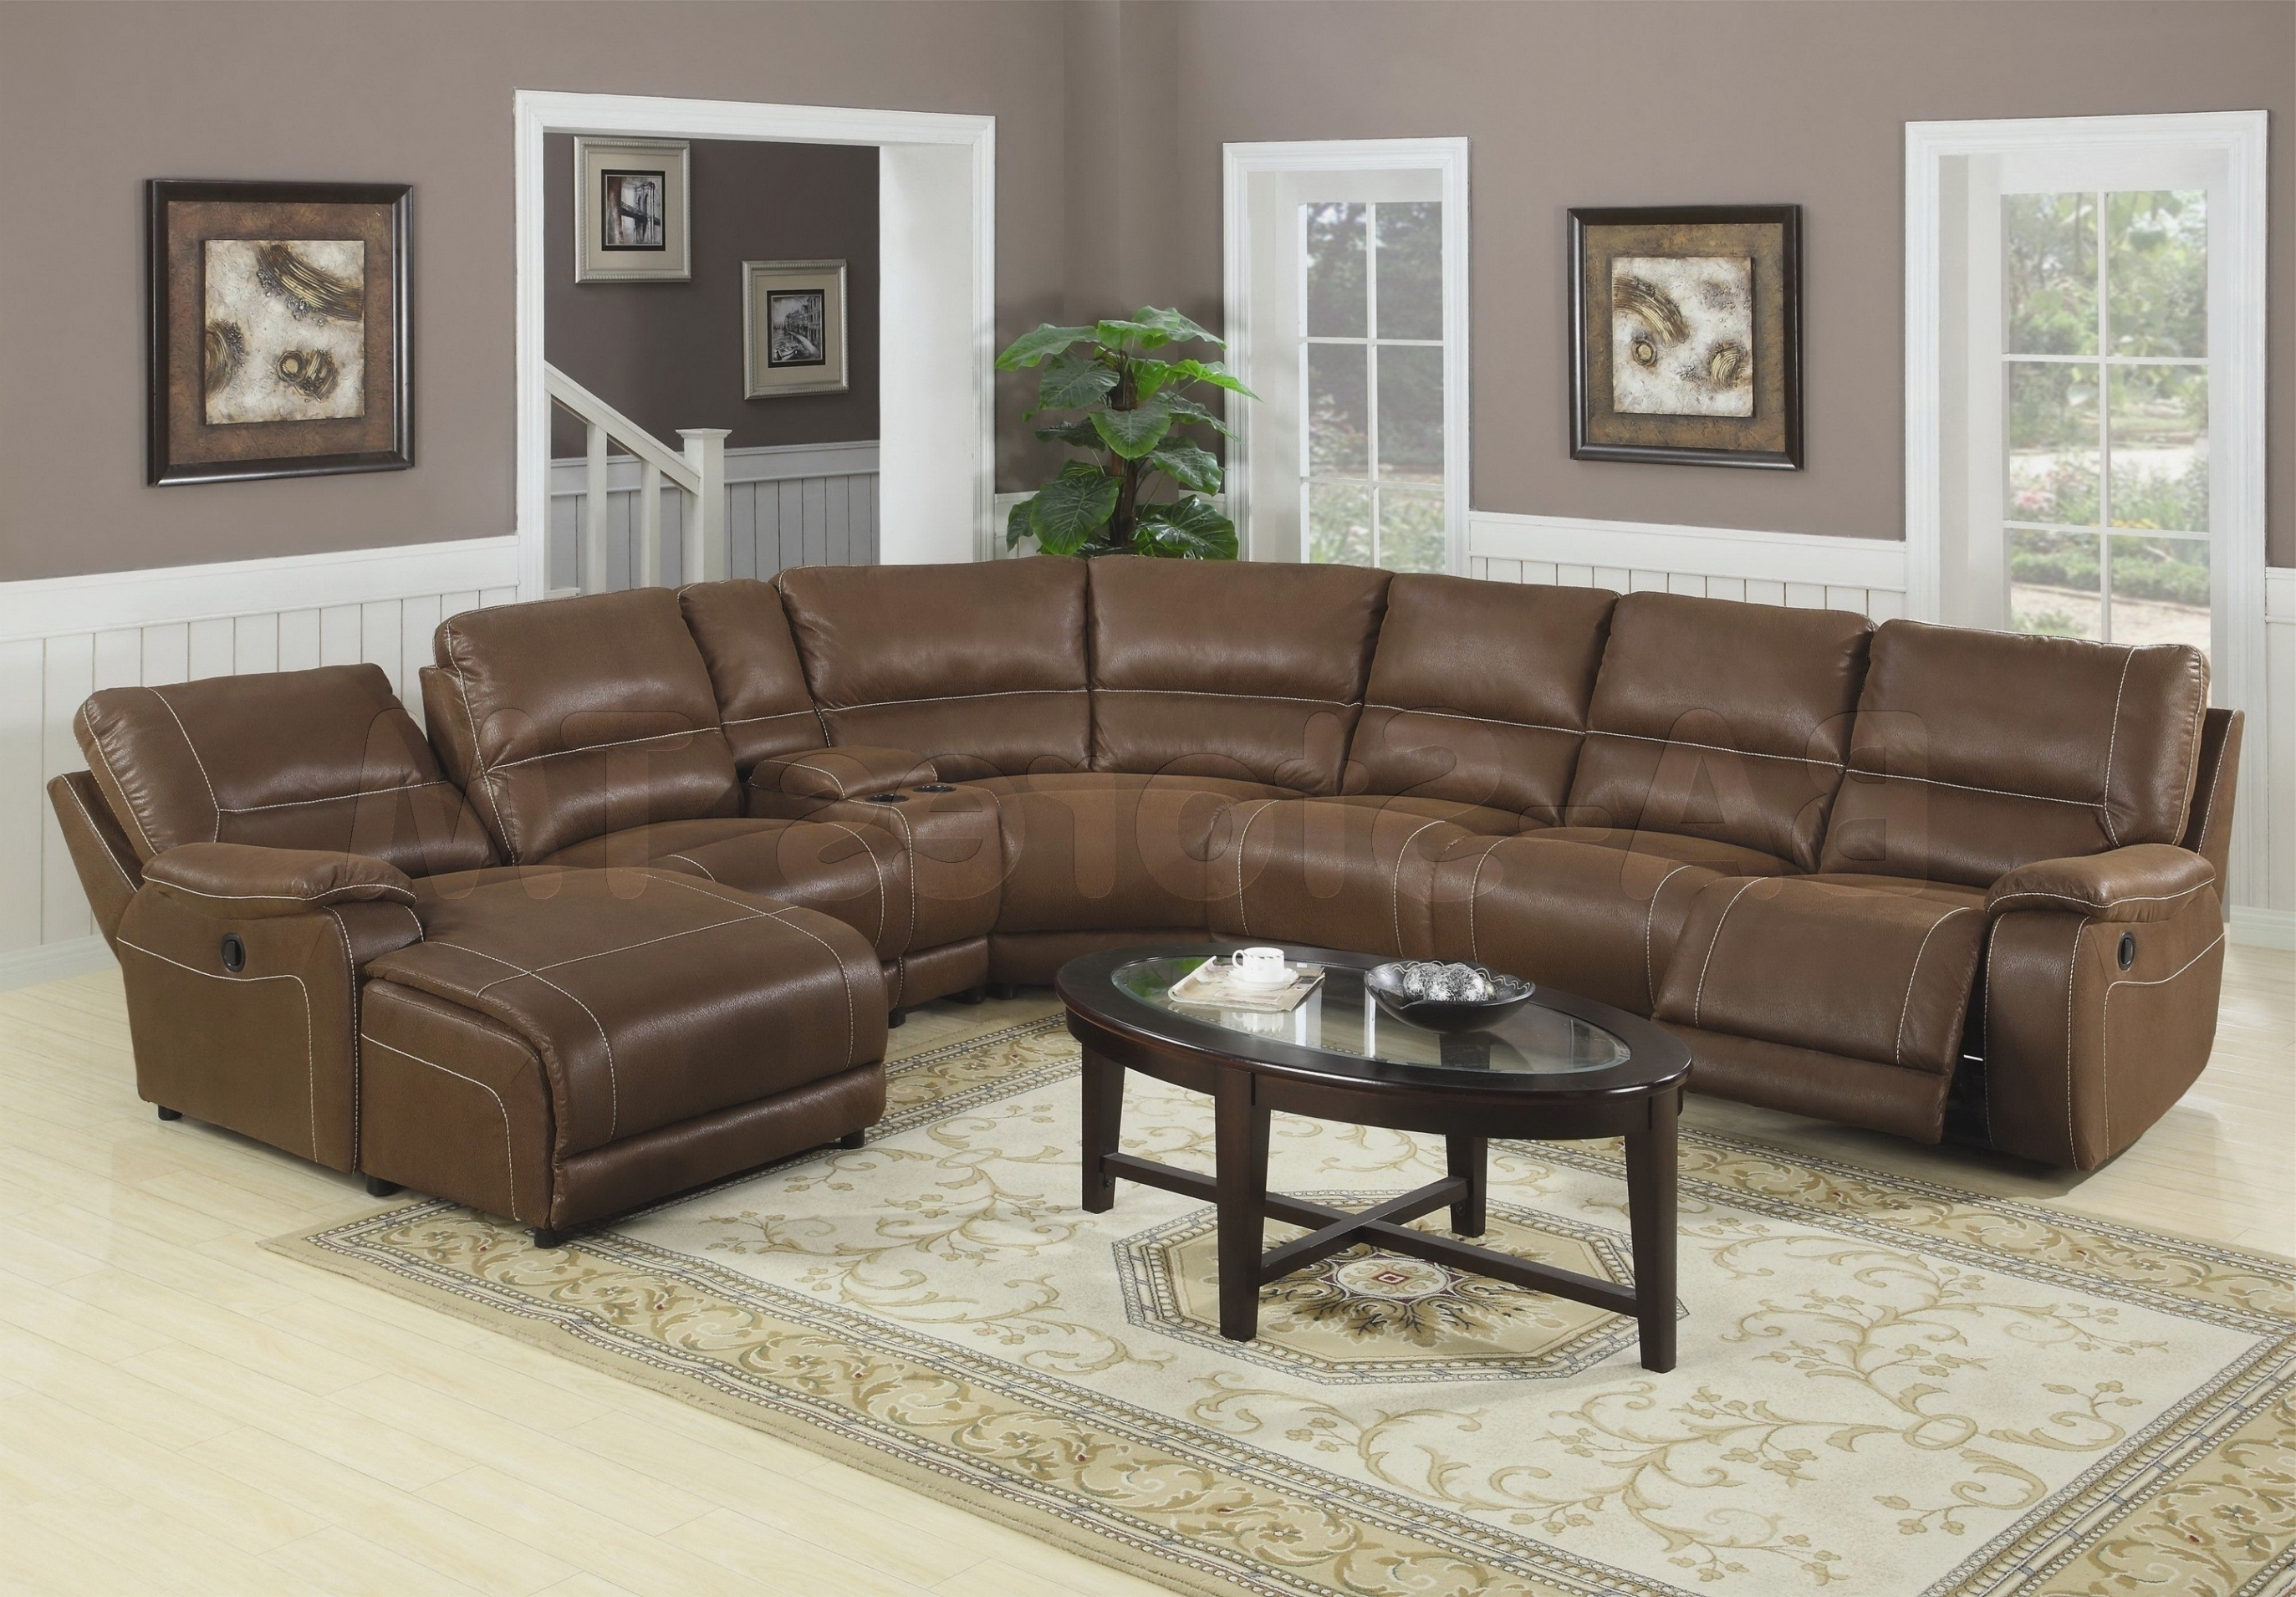 Elegant The Brick Sectionals – Buildsimplehome Throughout Best And Newest The Brick Sectional Sofas (Gallery 18 of 20)